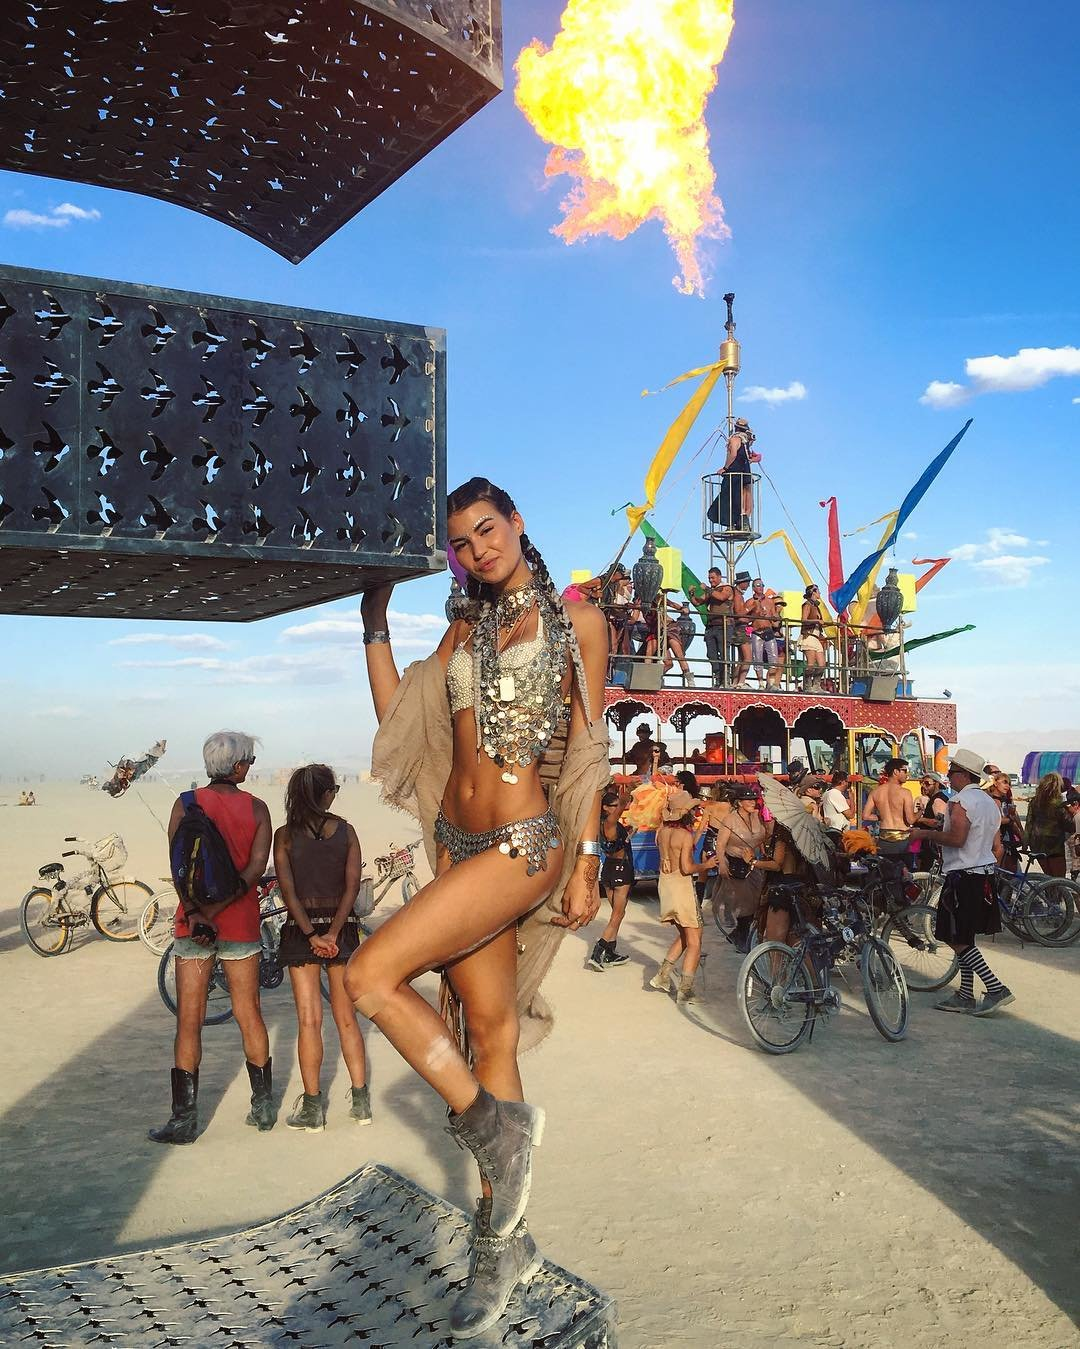 Фестиваль Burning Man 2016 в фотографиях